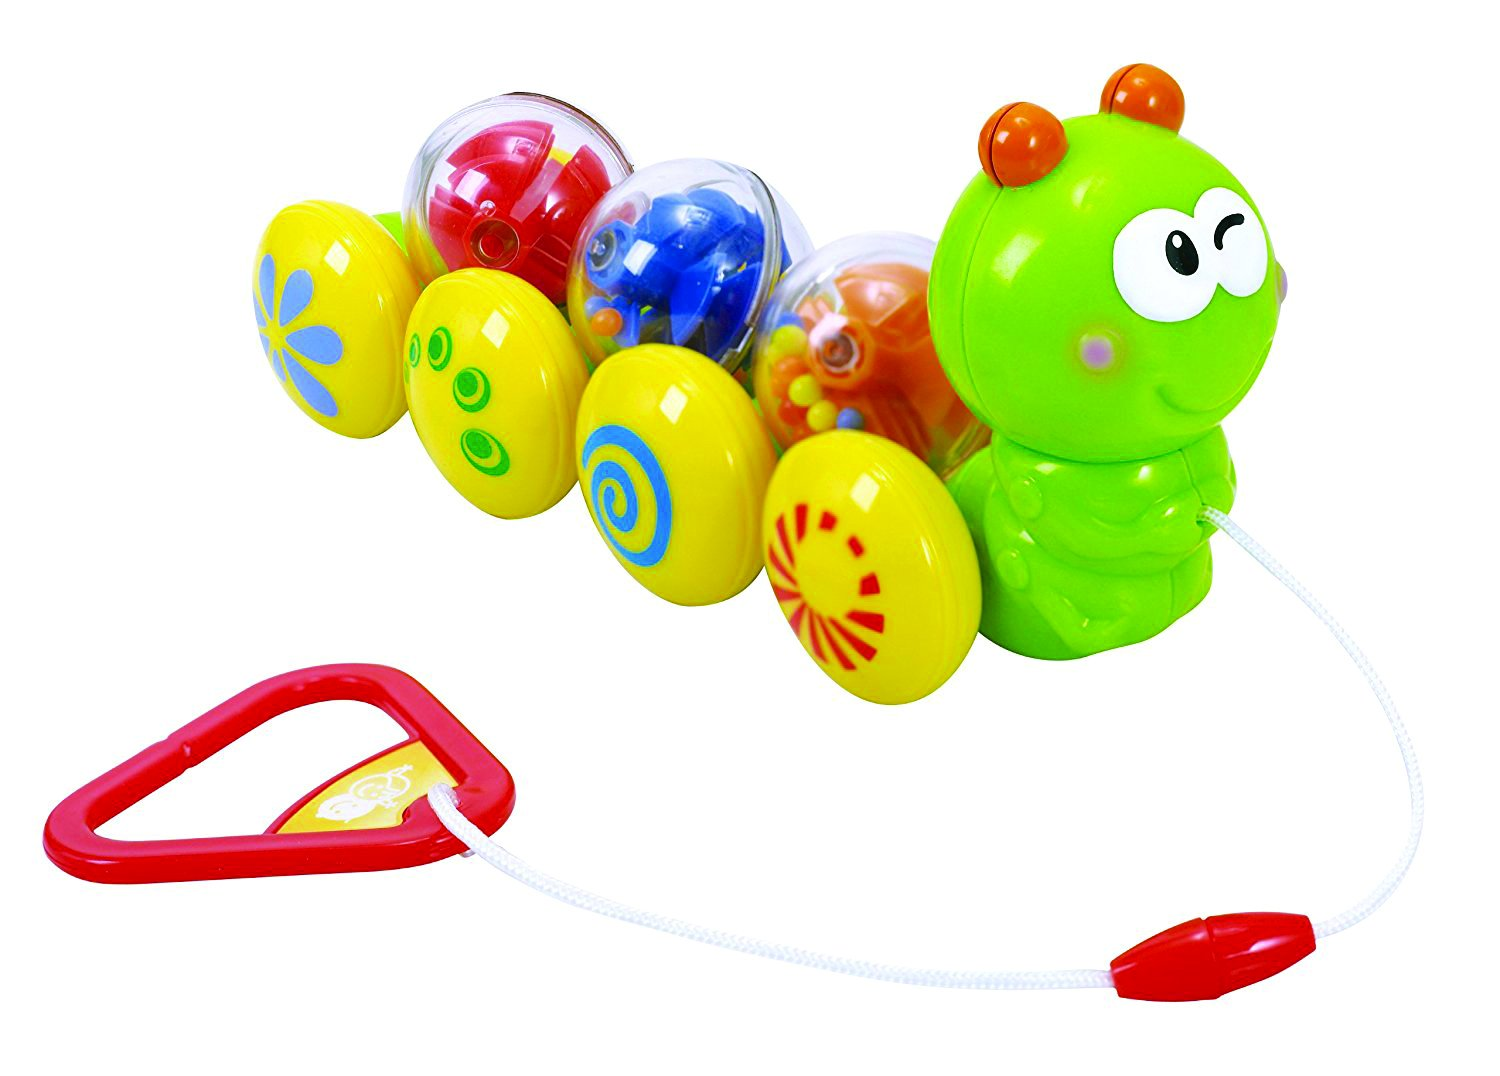 KidSource 1775 Wiggly Caterpillar Baby Pull Along Toy Green Blue Red Yellow